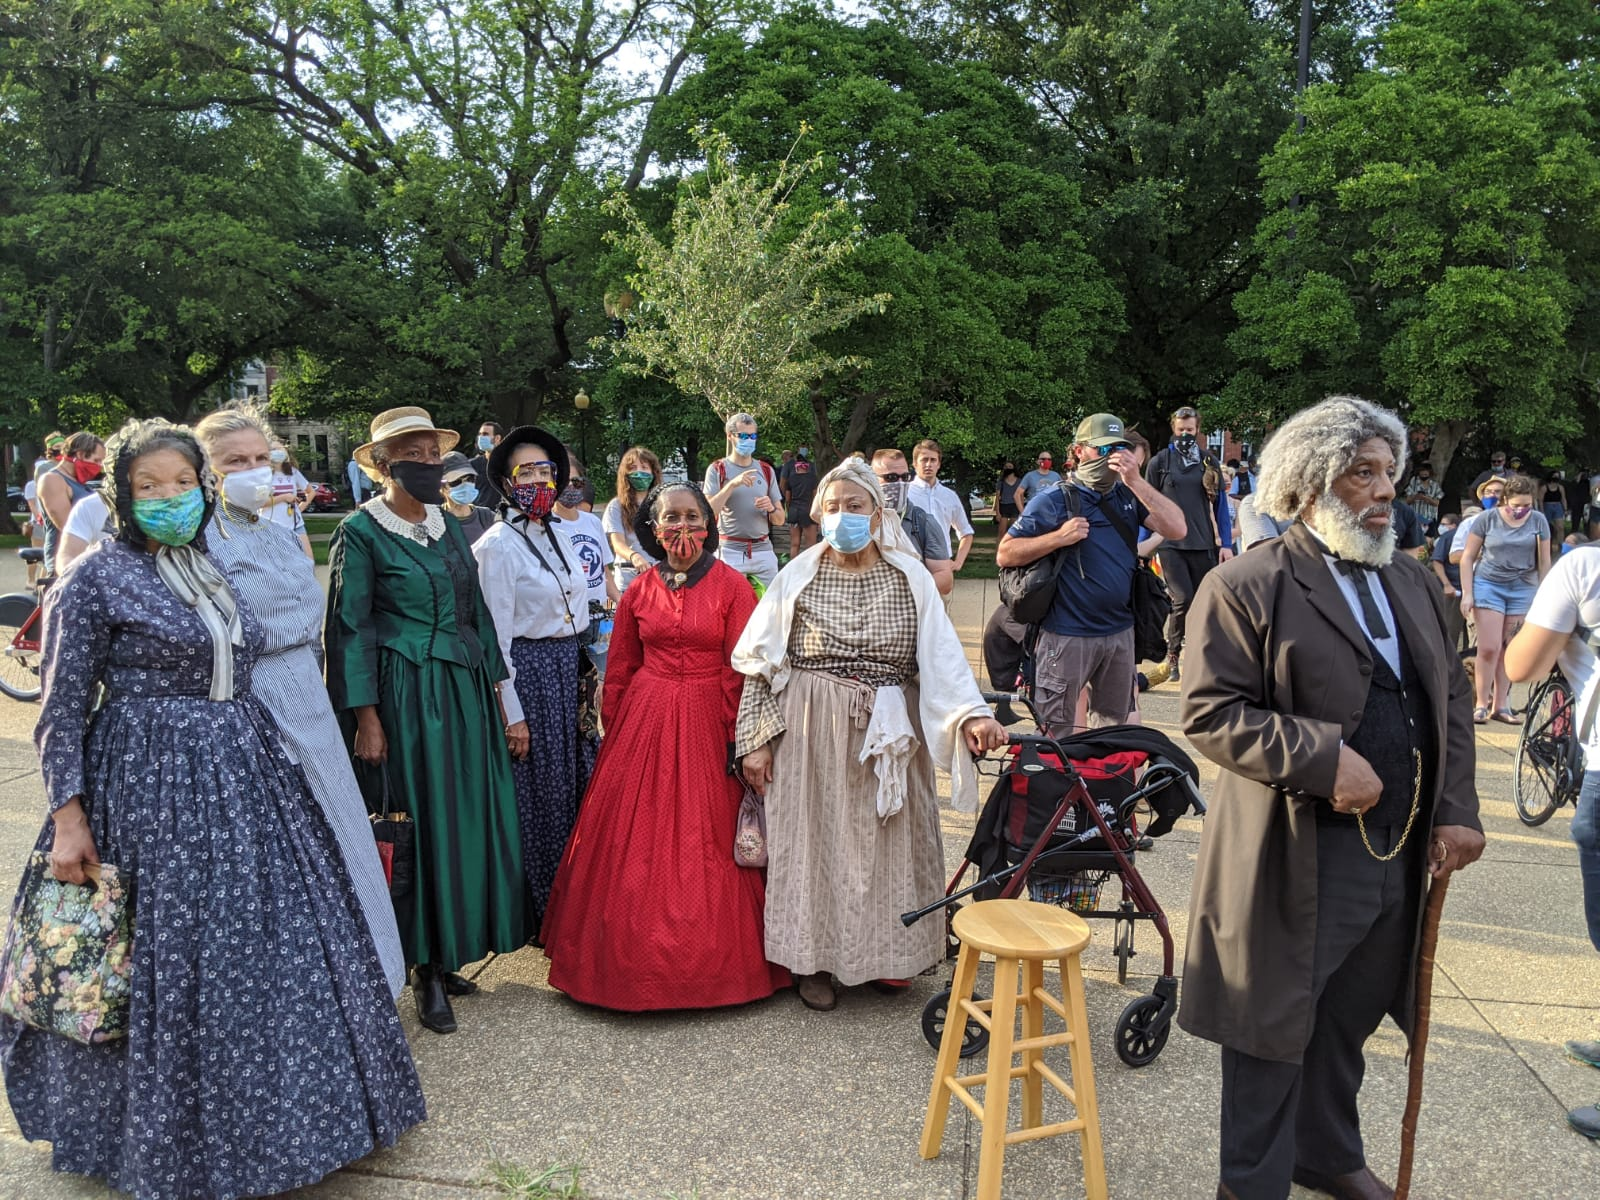 Reenactors gather to speak. Photo by Christopher Bedford/The Federalist.